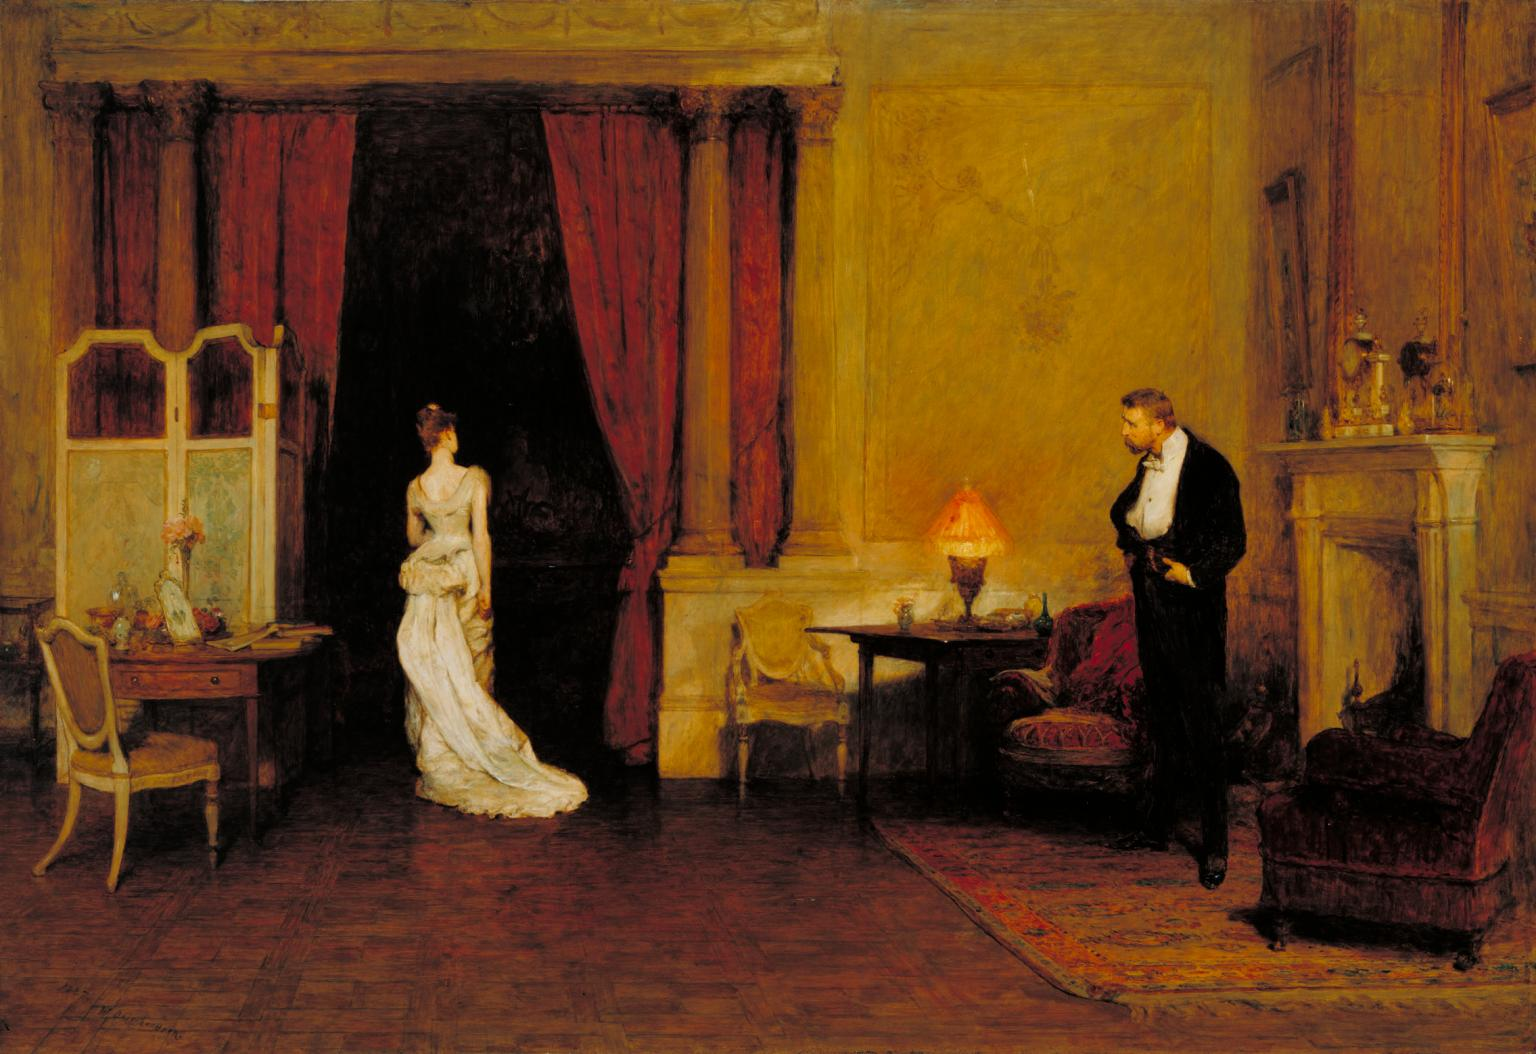 Sir William Quiller Orchardson, The First Cloud, 1887